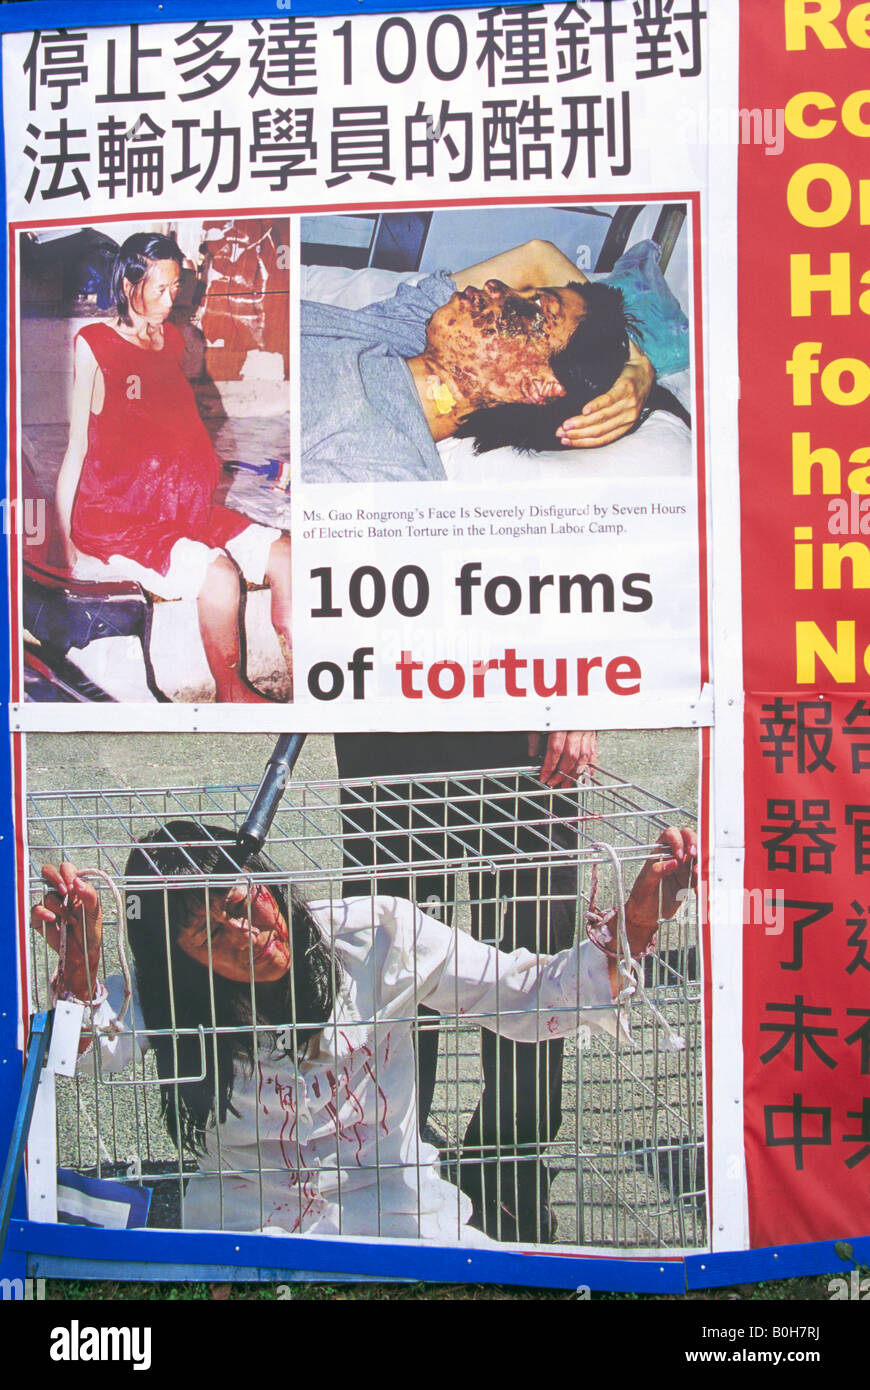 Falun Gong Protest Sign against Torture and Organ Harvesting